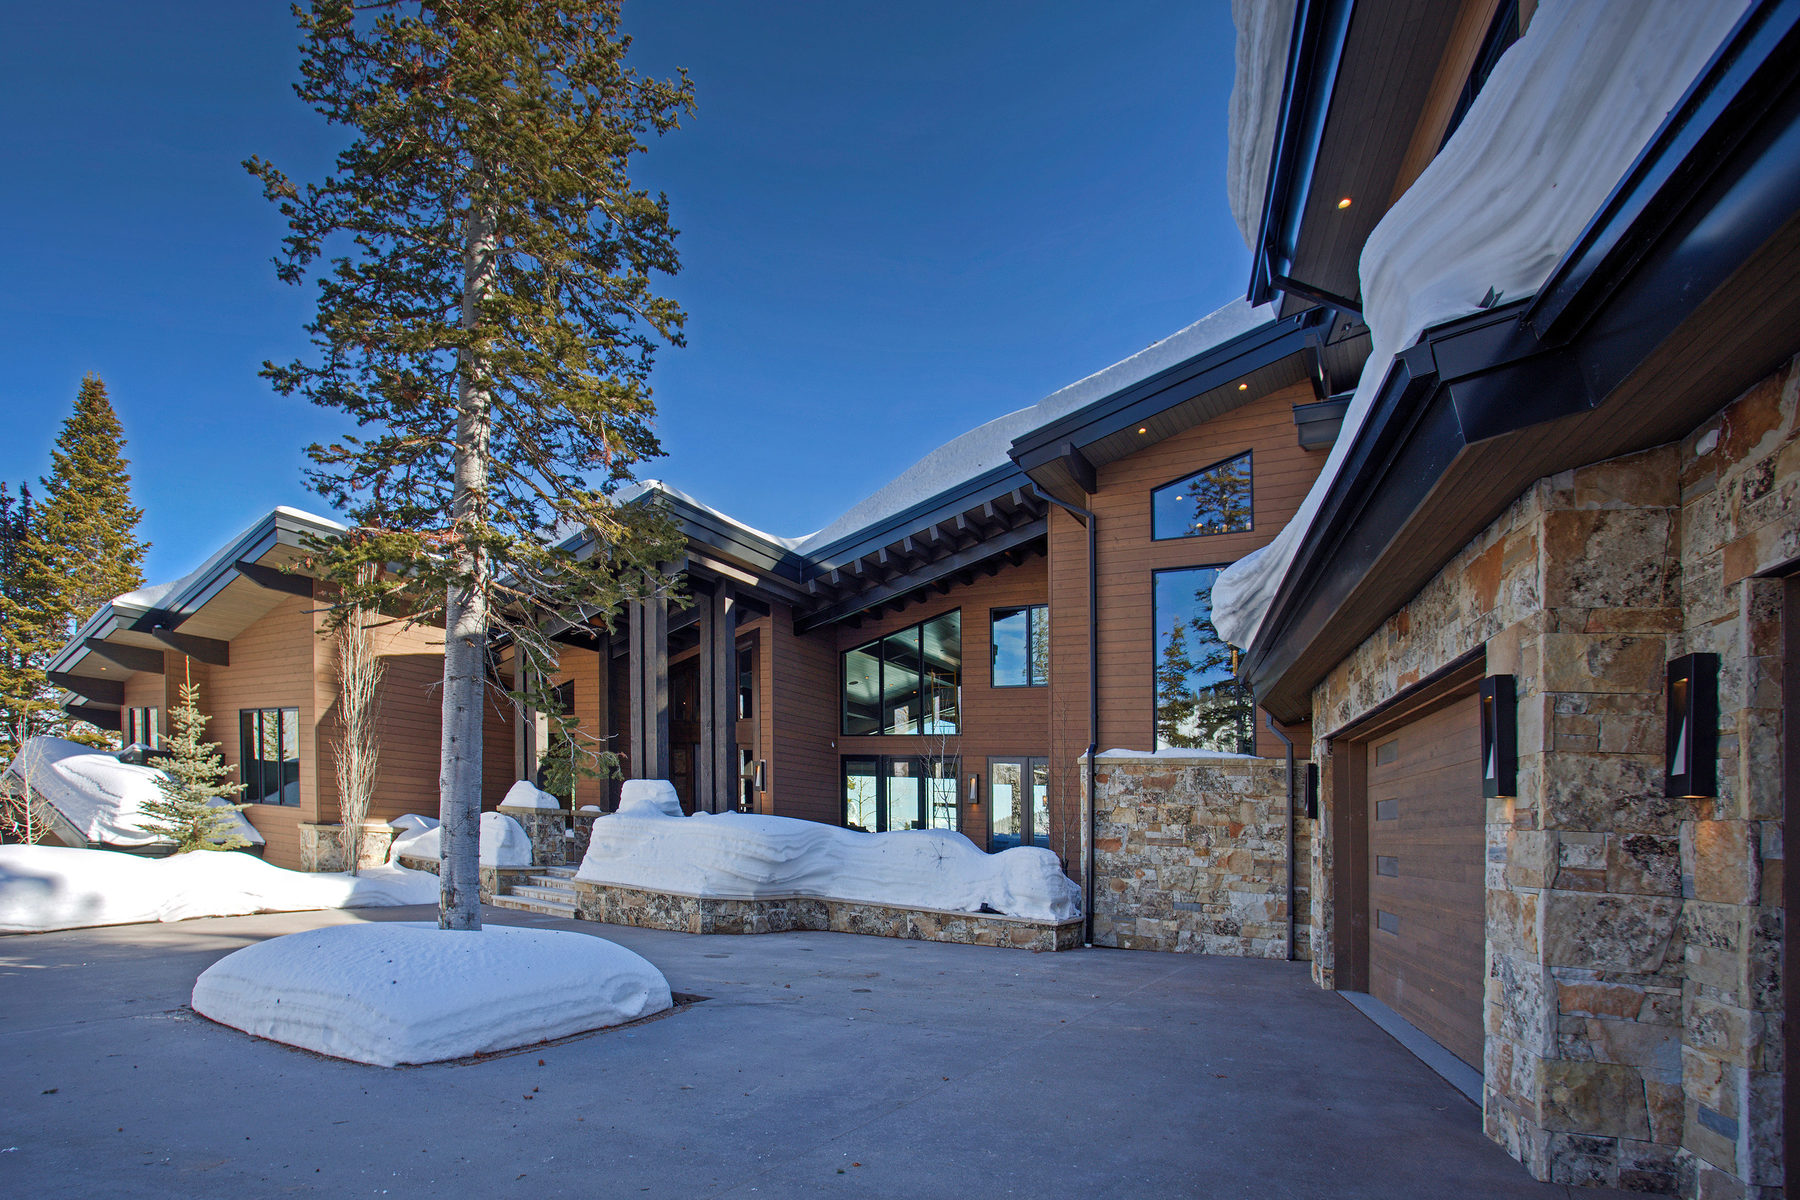 Casa Unifamiliar por un Venta en Don't miss this incredible opportunity to own one of the finest homes ever built 109 White Pine Canyon Rd Park City, Utah, 84060 Estados Unidos